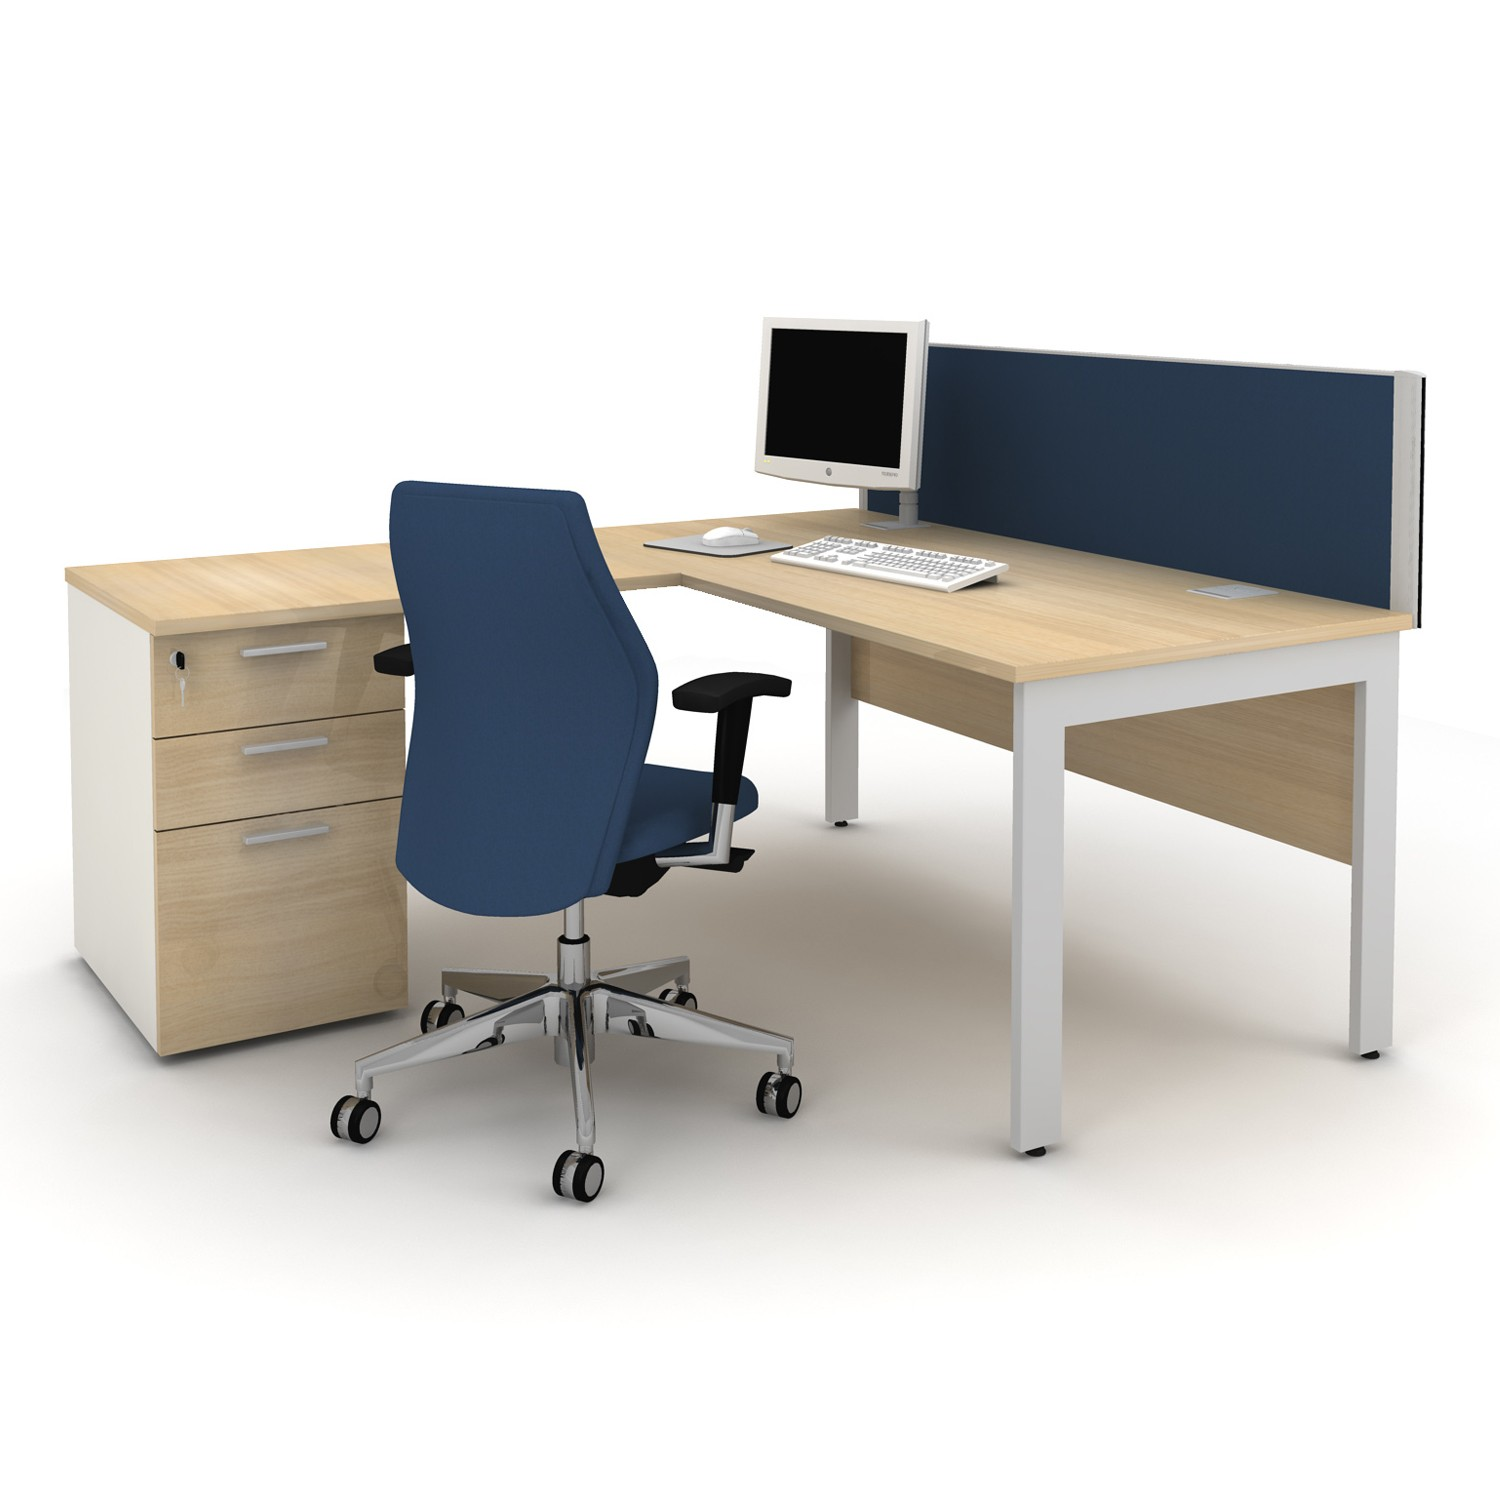 Office Depot Desks | Office Depot Desks on Sale | Office Depot Magellan Desk